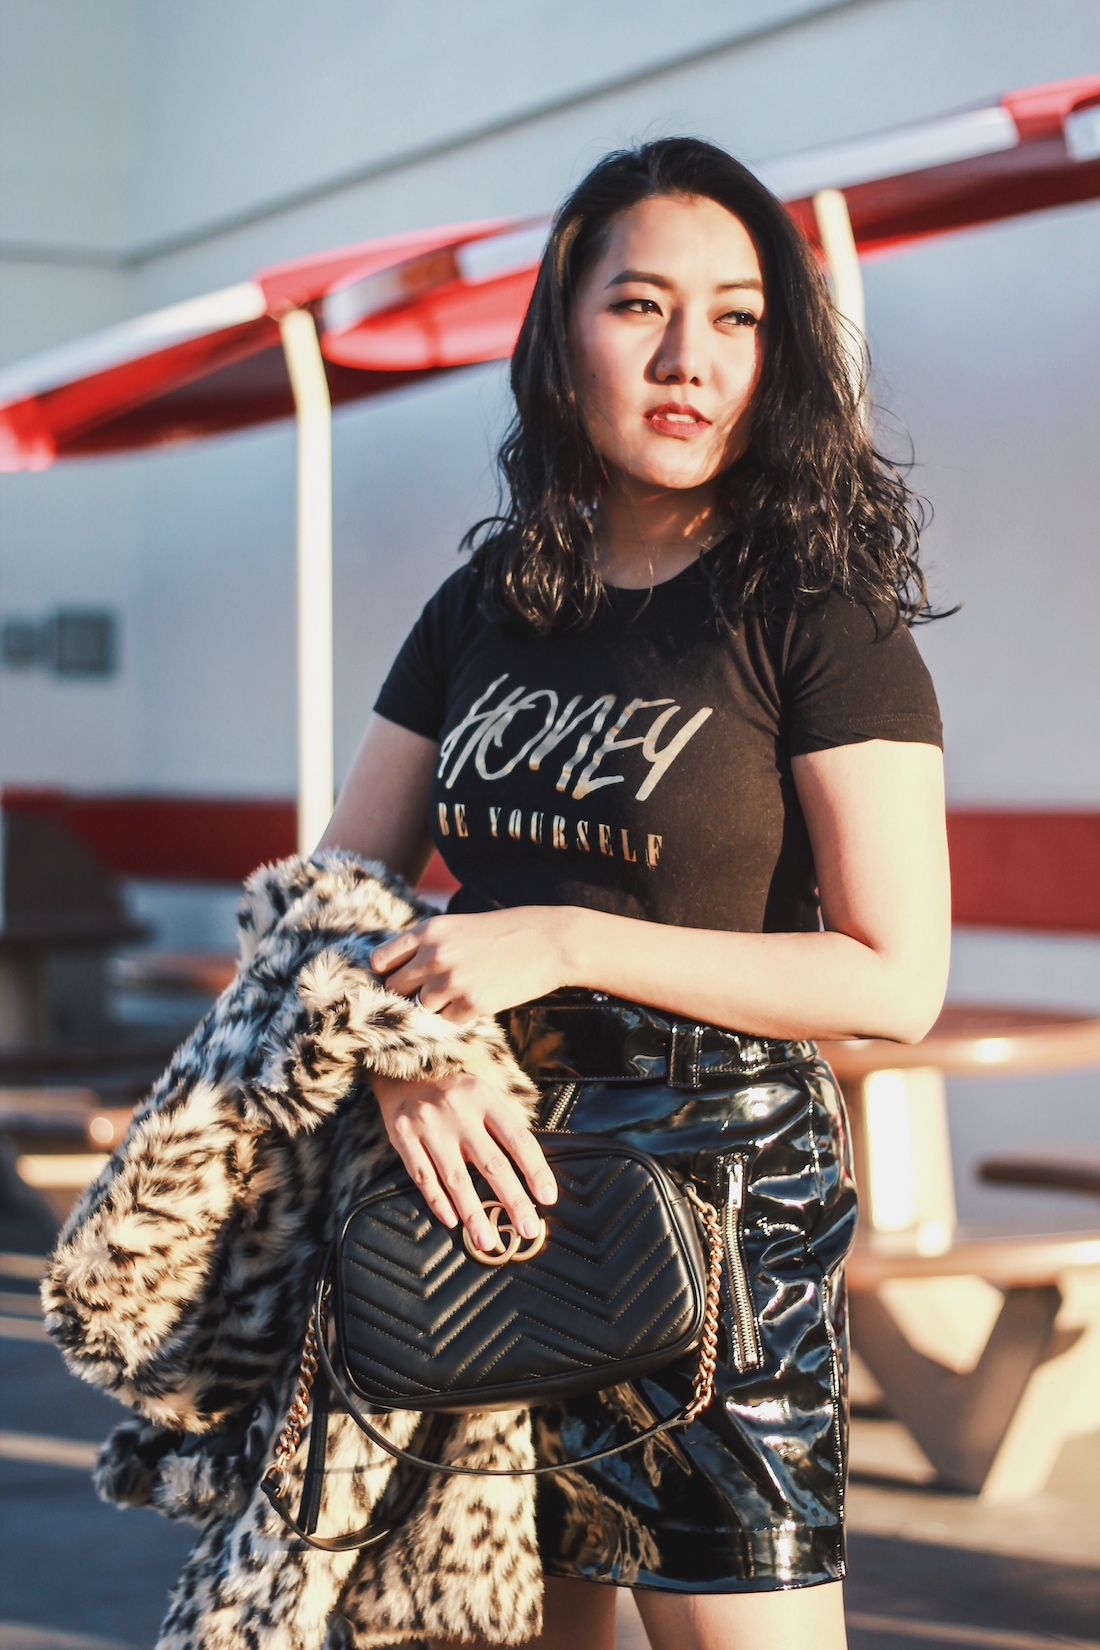 Leopard-Print-Jacket-Patent-Skirt-Winter-Outfit-Honey-Be-Yourself-Black-and-Gold-Graphic-Tee-Allaboutgoodvibes.com